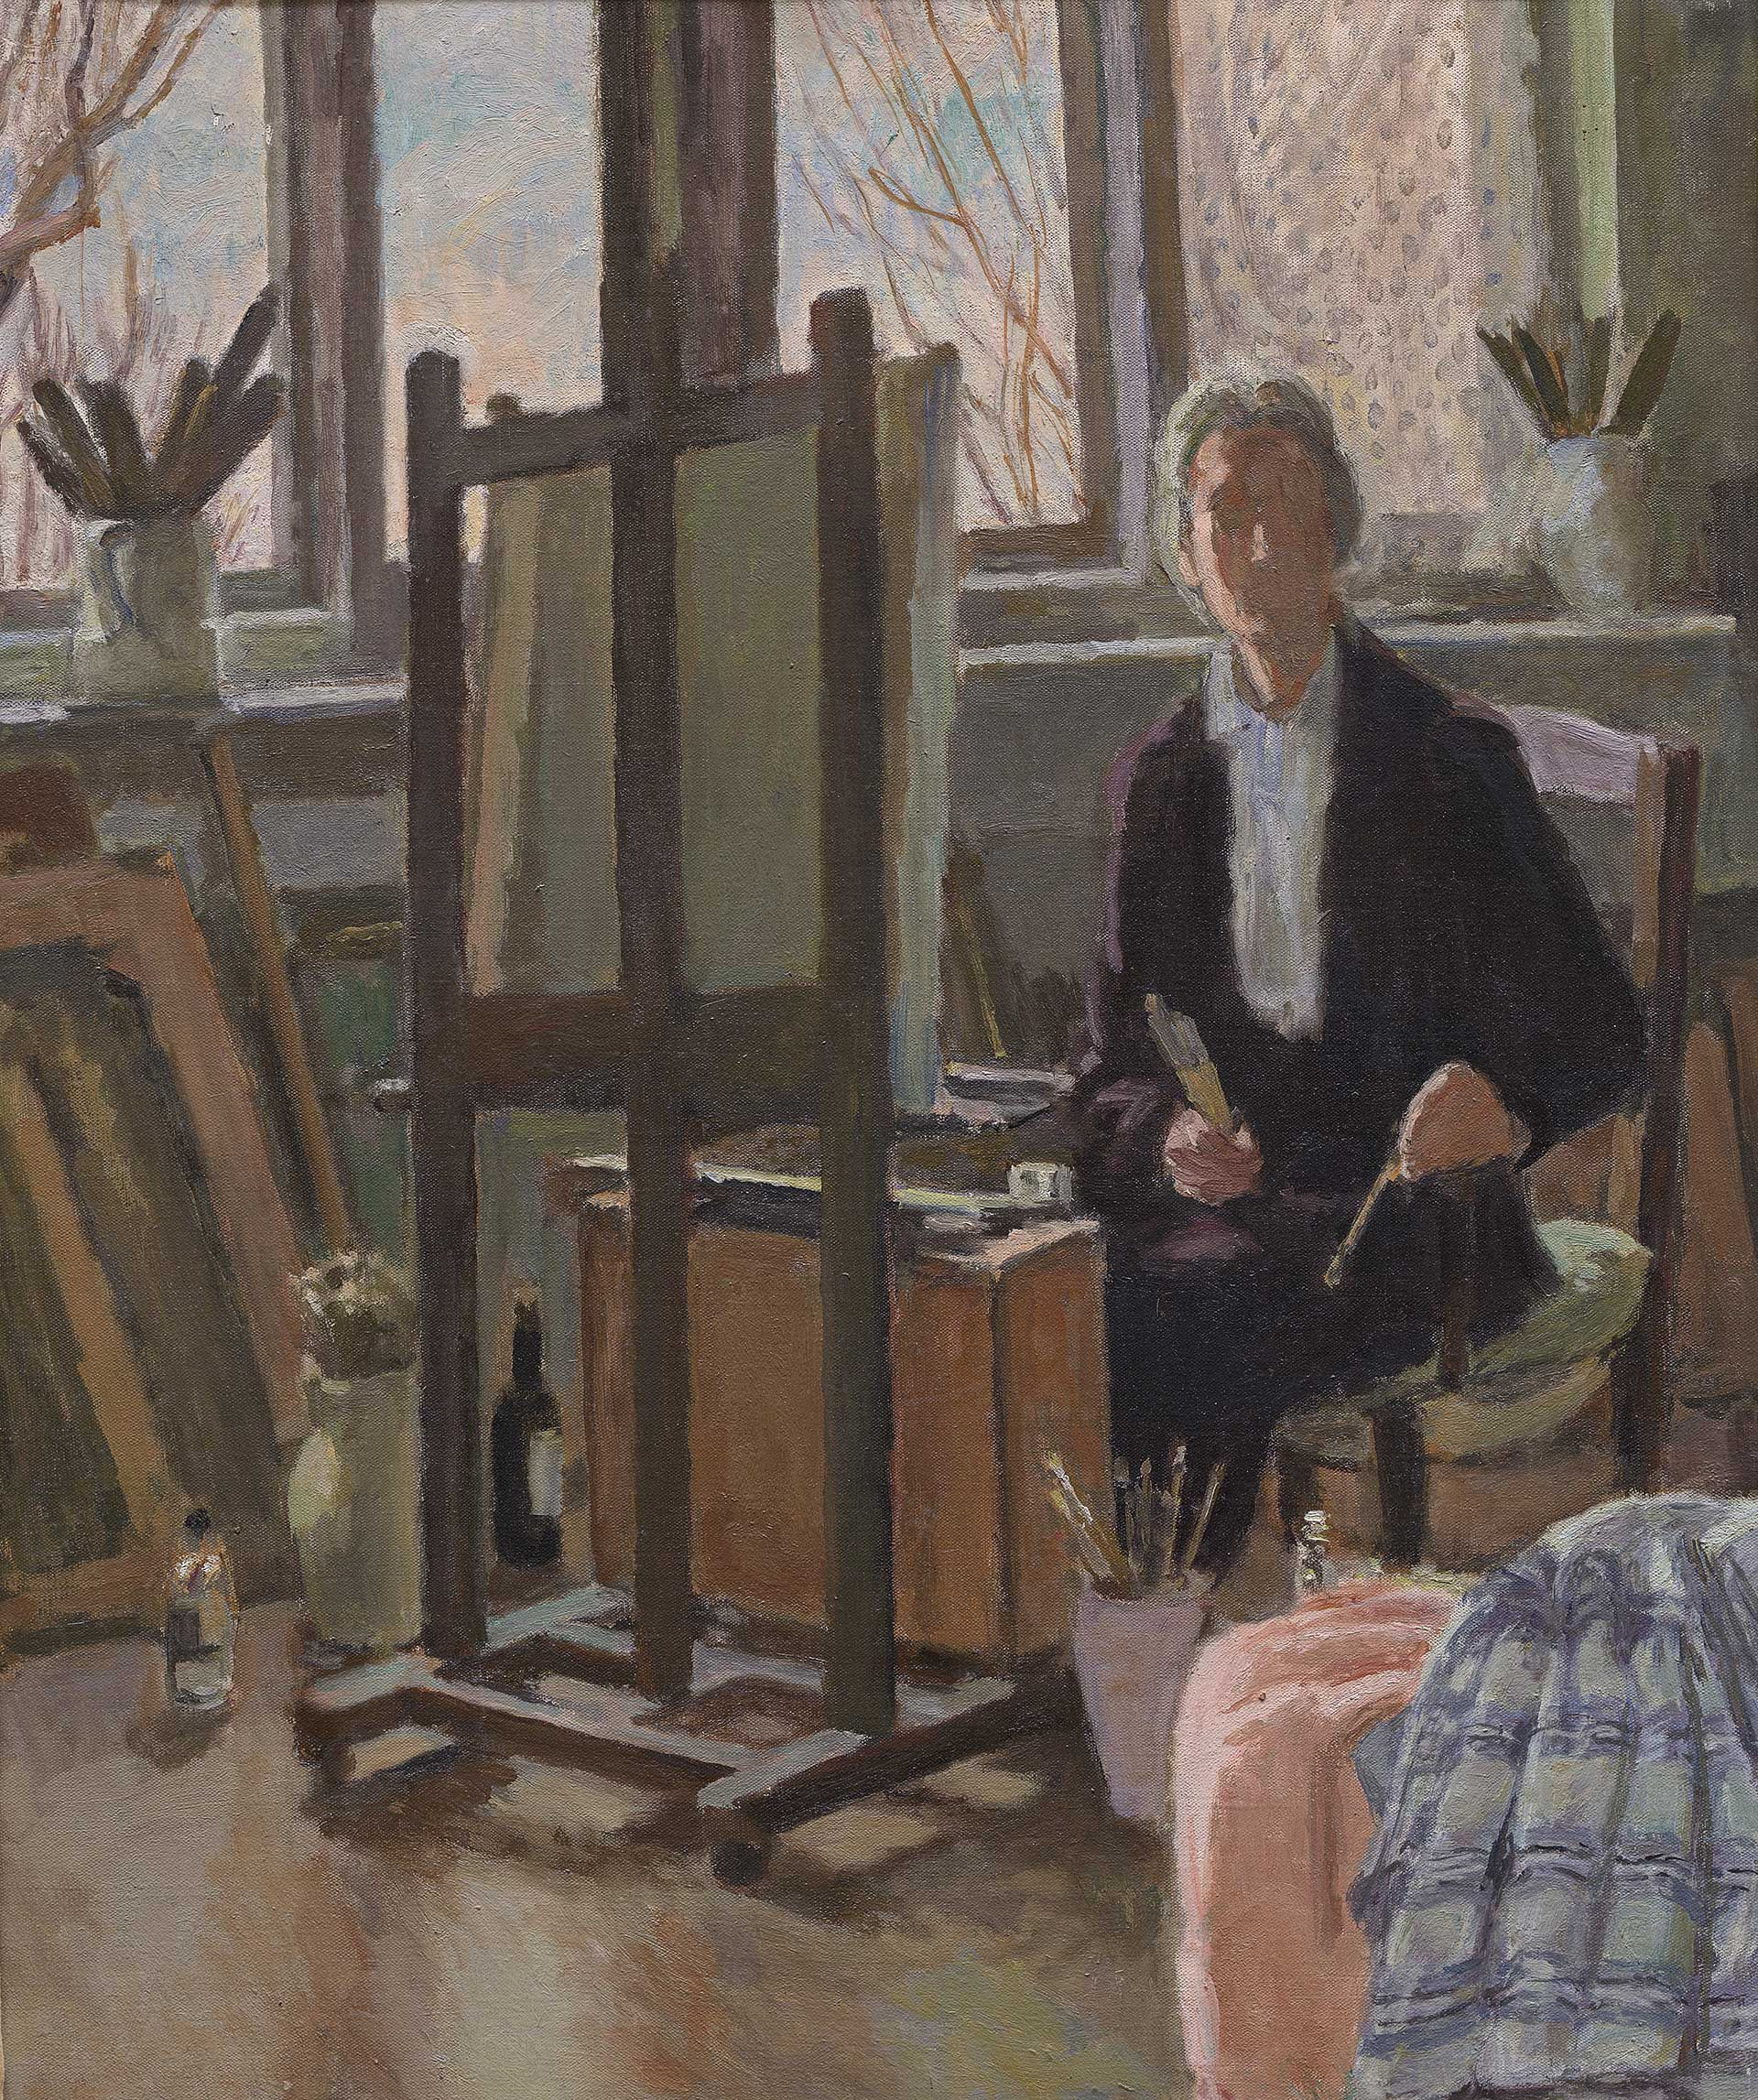 Vanessa Bell, The Artist in her Studio, 1952, oil on canvas, Yale Center for British Art, Louise Wheatley Collection, Gift of Alison, Kit, and Christopher Wheatley, © Estate of the Artist